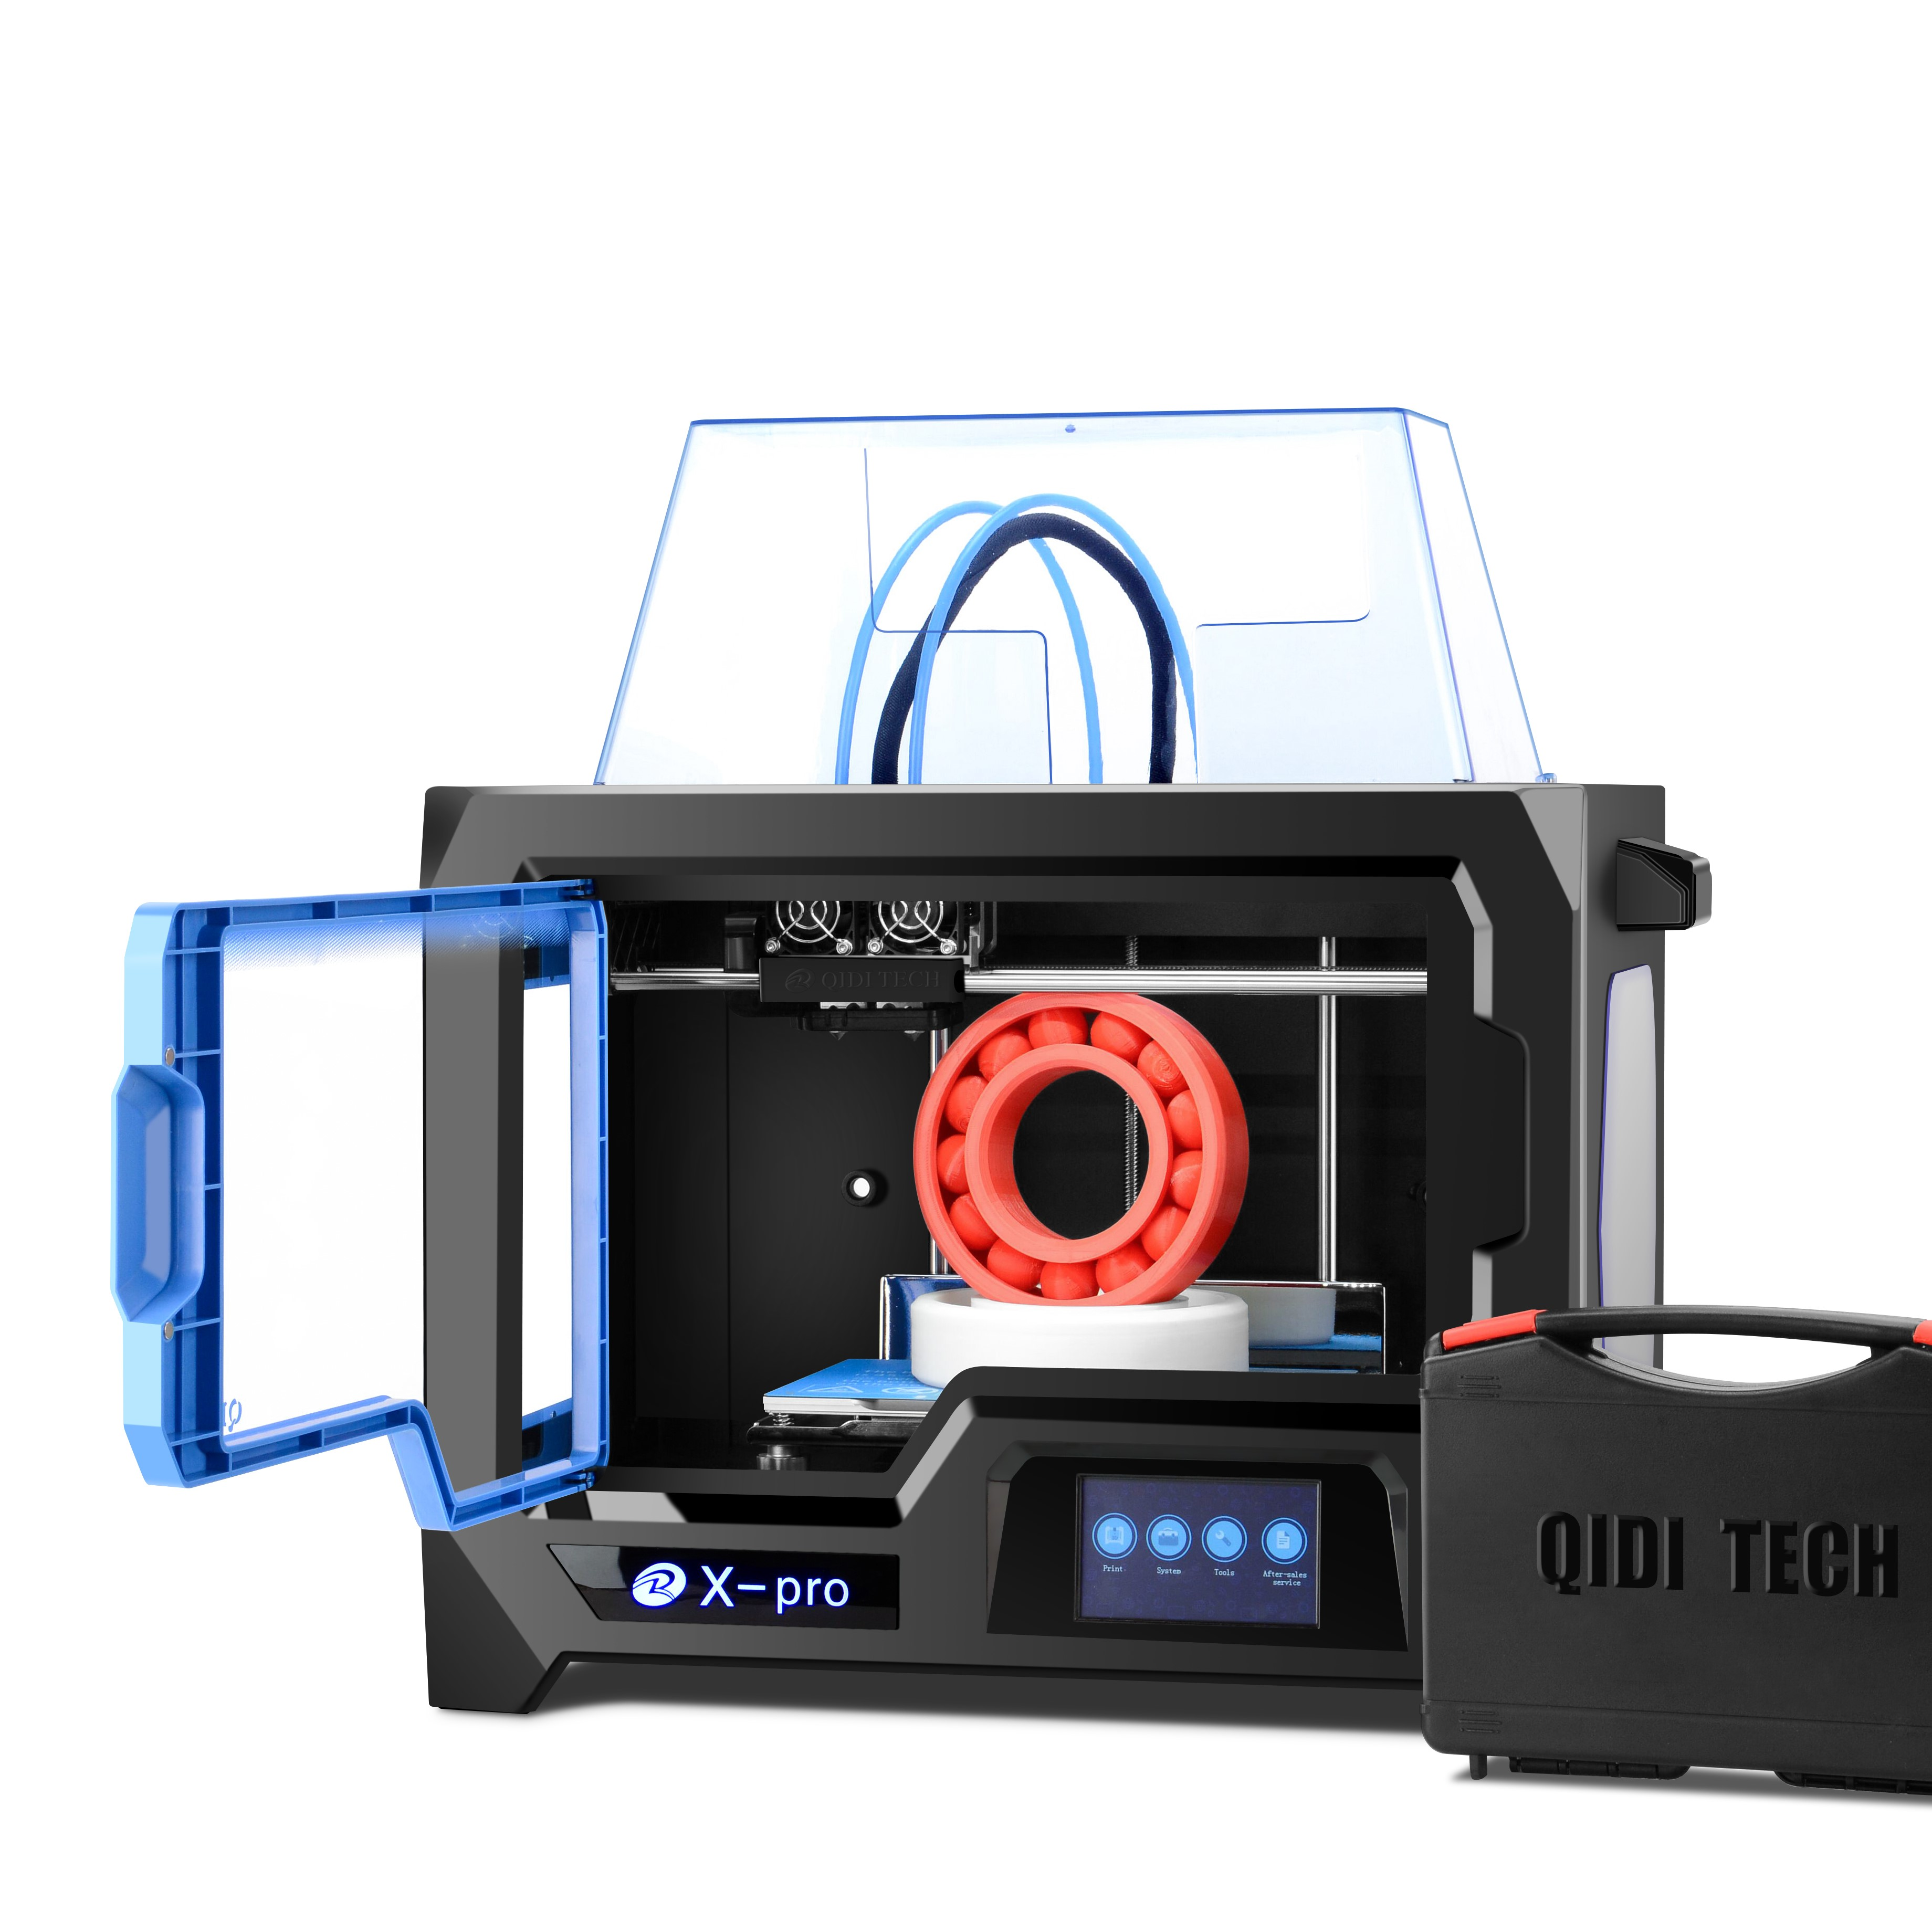 QIDI TECH 3D printer Dual Extruder 3D printer X -pro 4.3 Inch Touch Screen wifi/lan connection 200*150*150mm ABS And PLA TPU